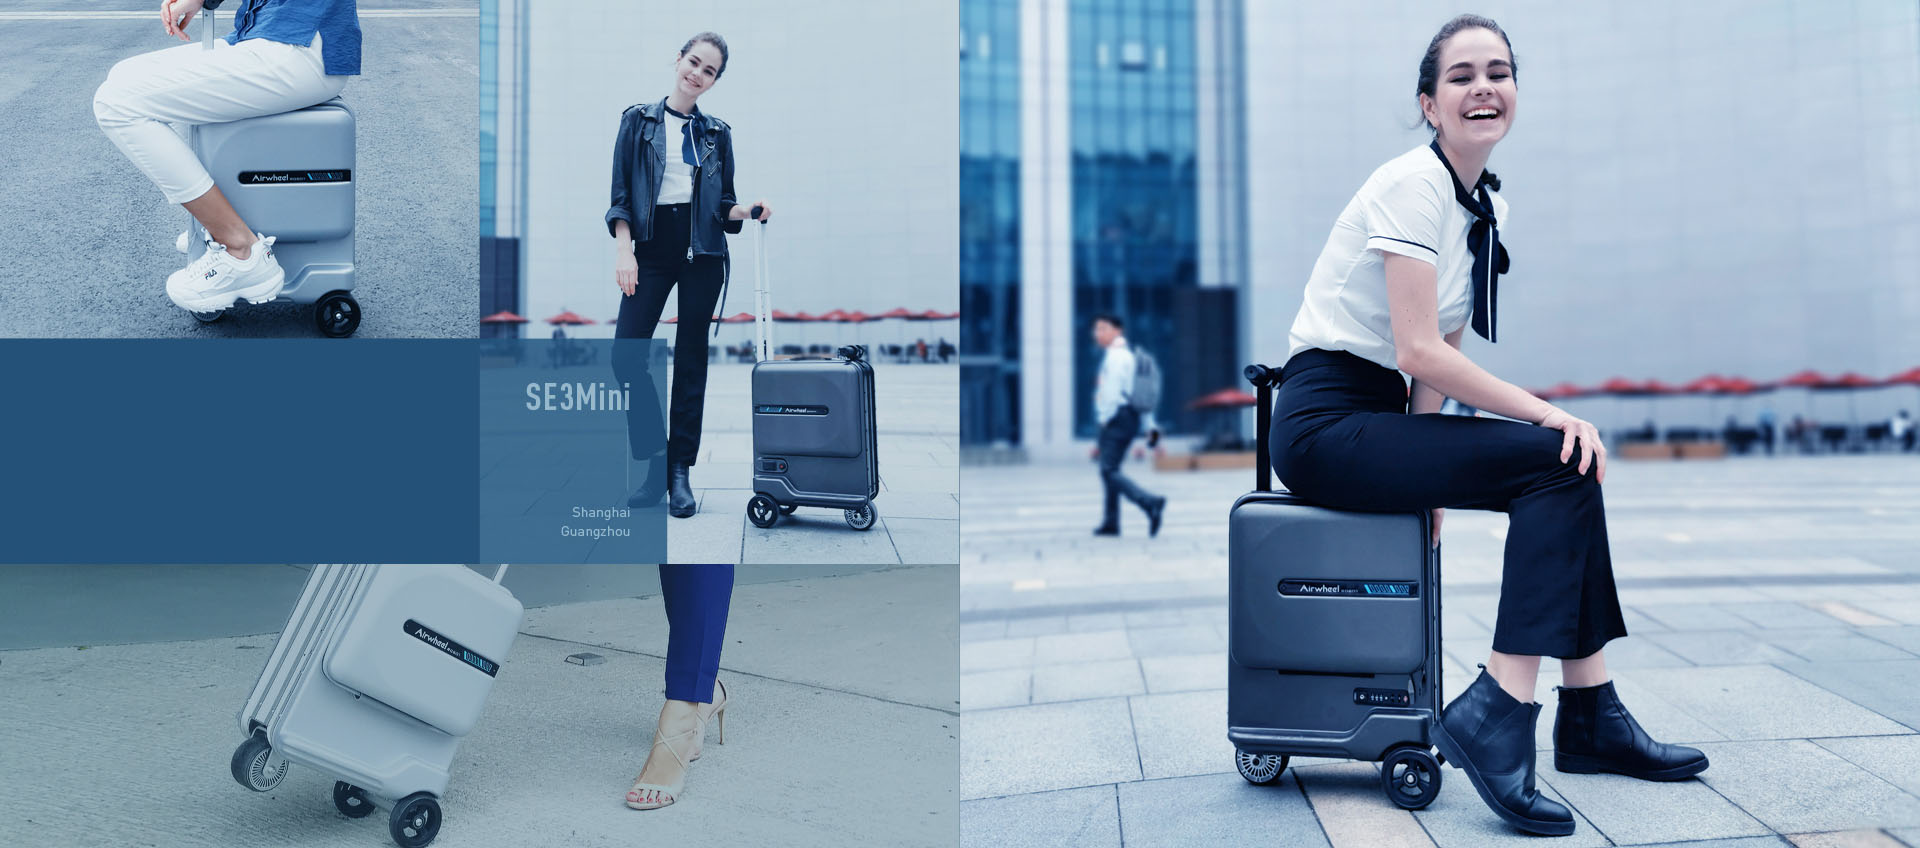 Airwheel SE3 motorized luggage